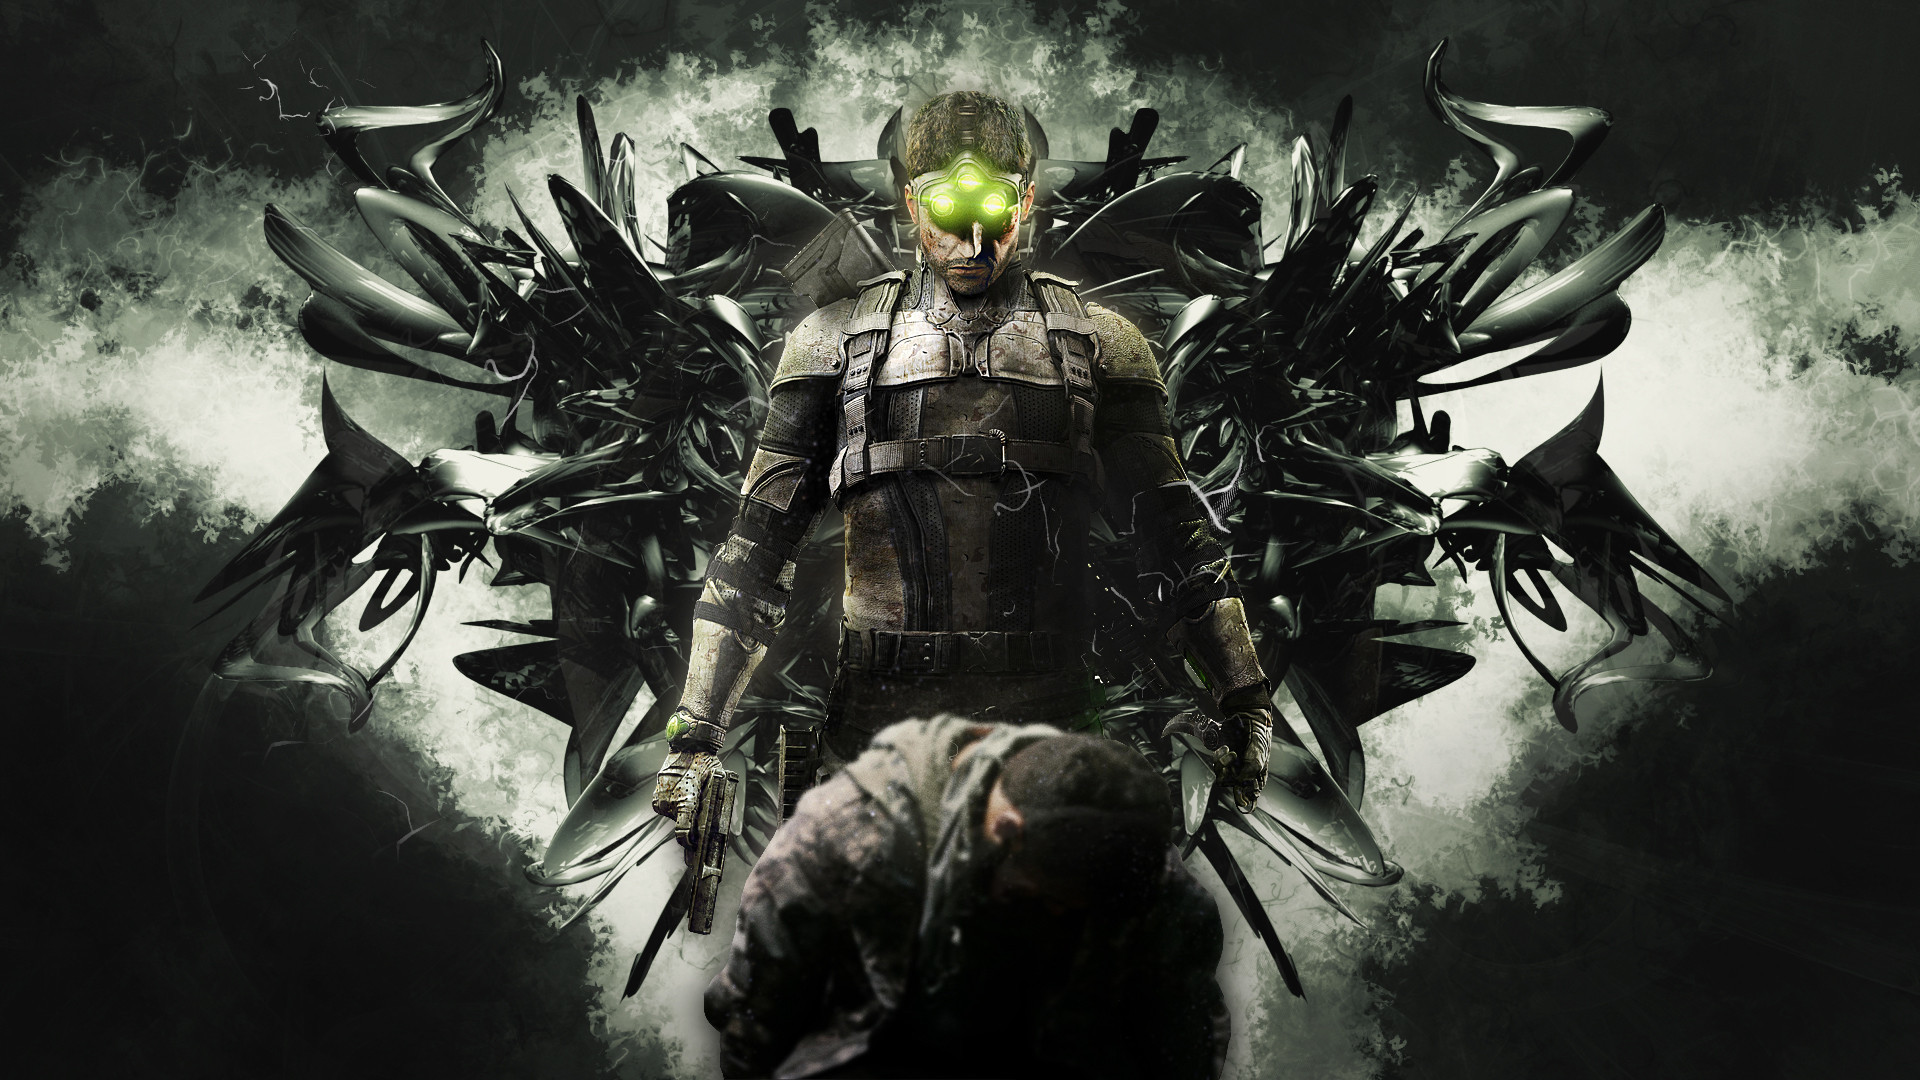 HD Gaming Wallpapers 1080p 77 Images